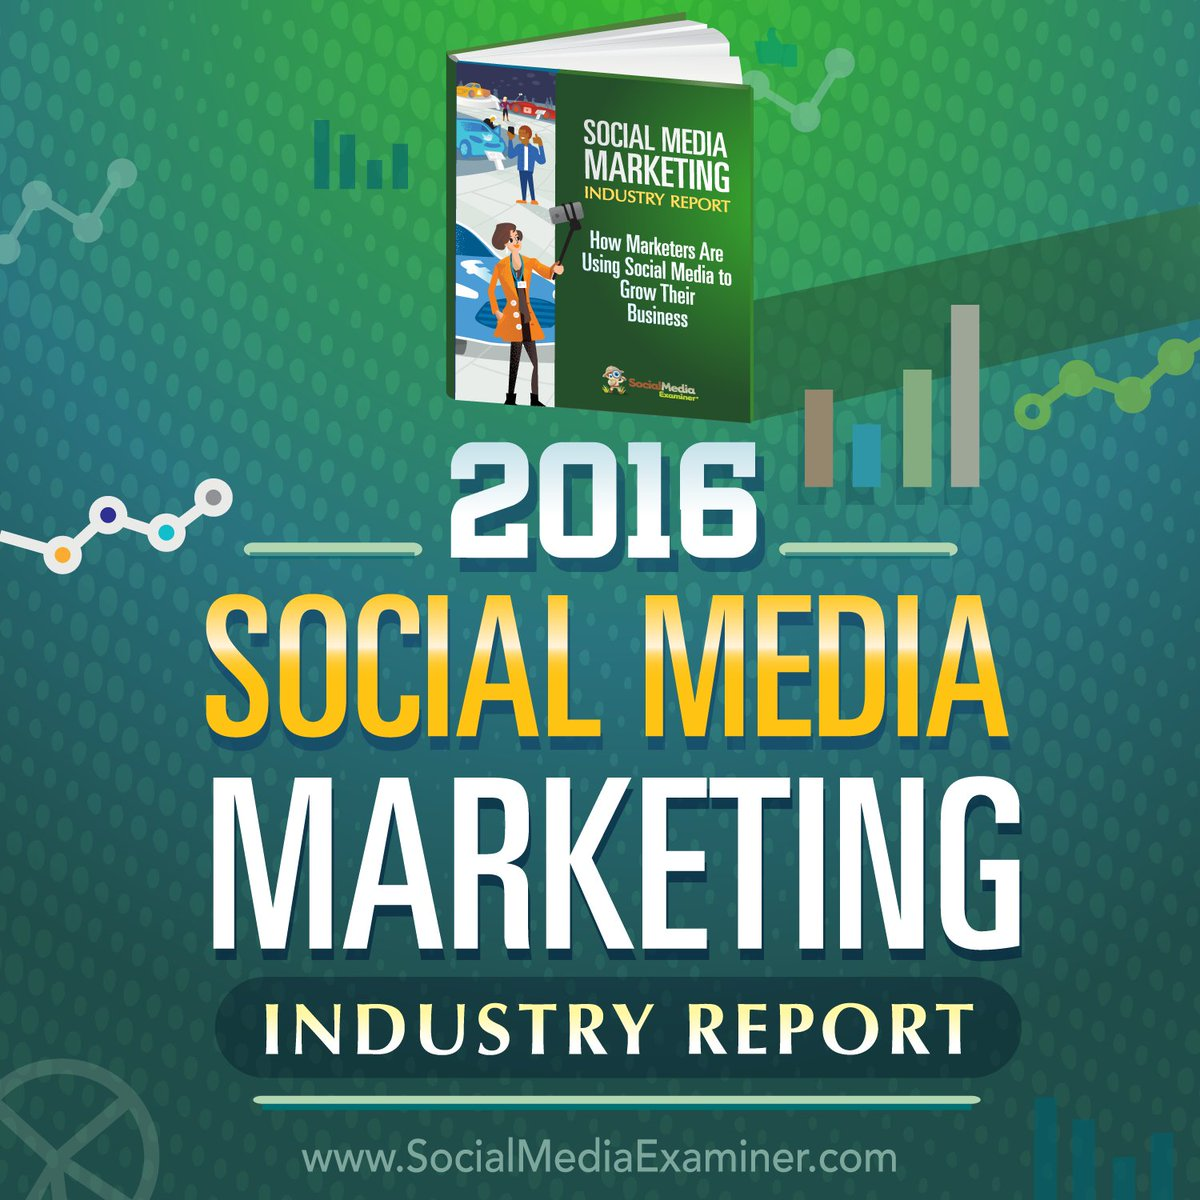 NEW: 2016 #SocialMedia #Marketing Industry Report https://t.co/a4wcz7J4ce by @Mike_Stelzner https://t.co/OAOtwS9FST